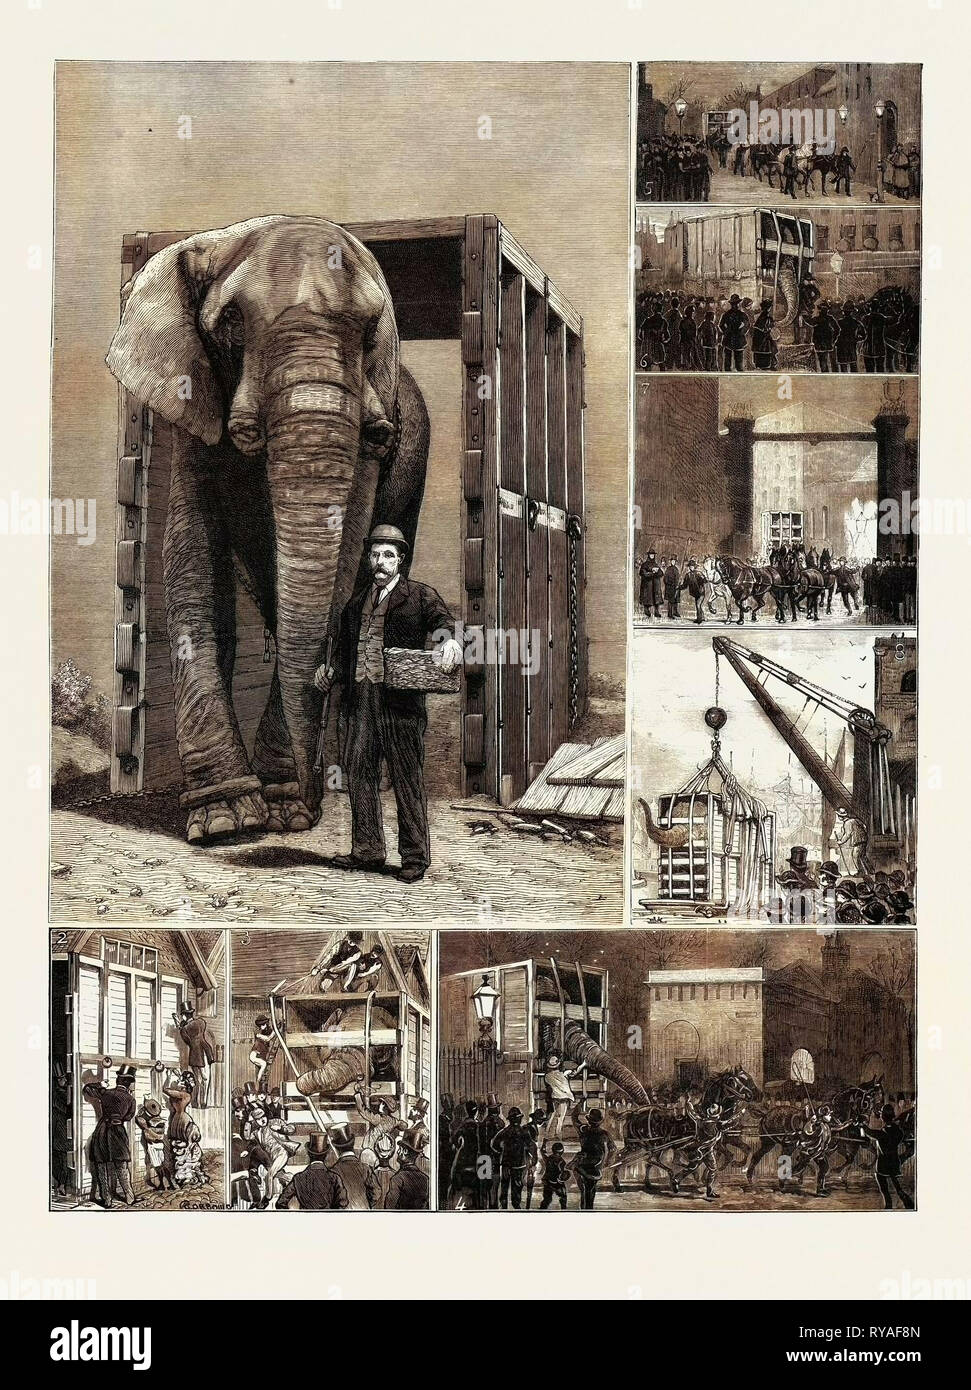 The Removal of Jumbo, on the Way to the Docks: 1. Through His Box at Last, 2. Visitors Inscribing Names on the Box As Having Called, 3. Jumbo Objects to the Irons, 4. At the Park Gates: Jumbo Drives Himself, 5. Albany Street: 'Guard Turn Out', 6. En Route, 'Jumbo's Old Lady', 7. Entering St. Katherine's Dock, 8. In Mid-Air: Being Lowered Into the Barge - Stock Image